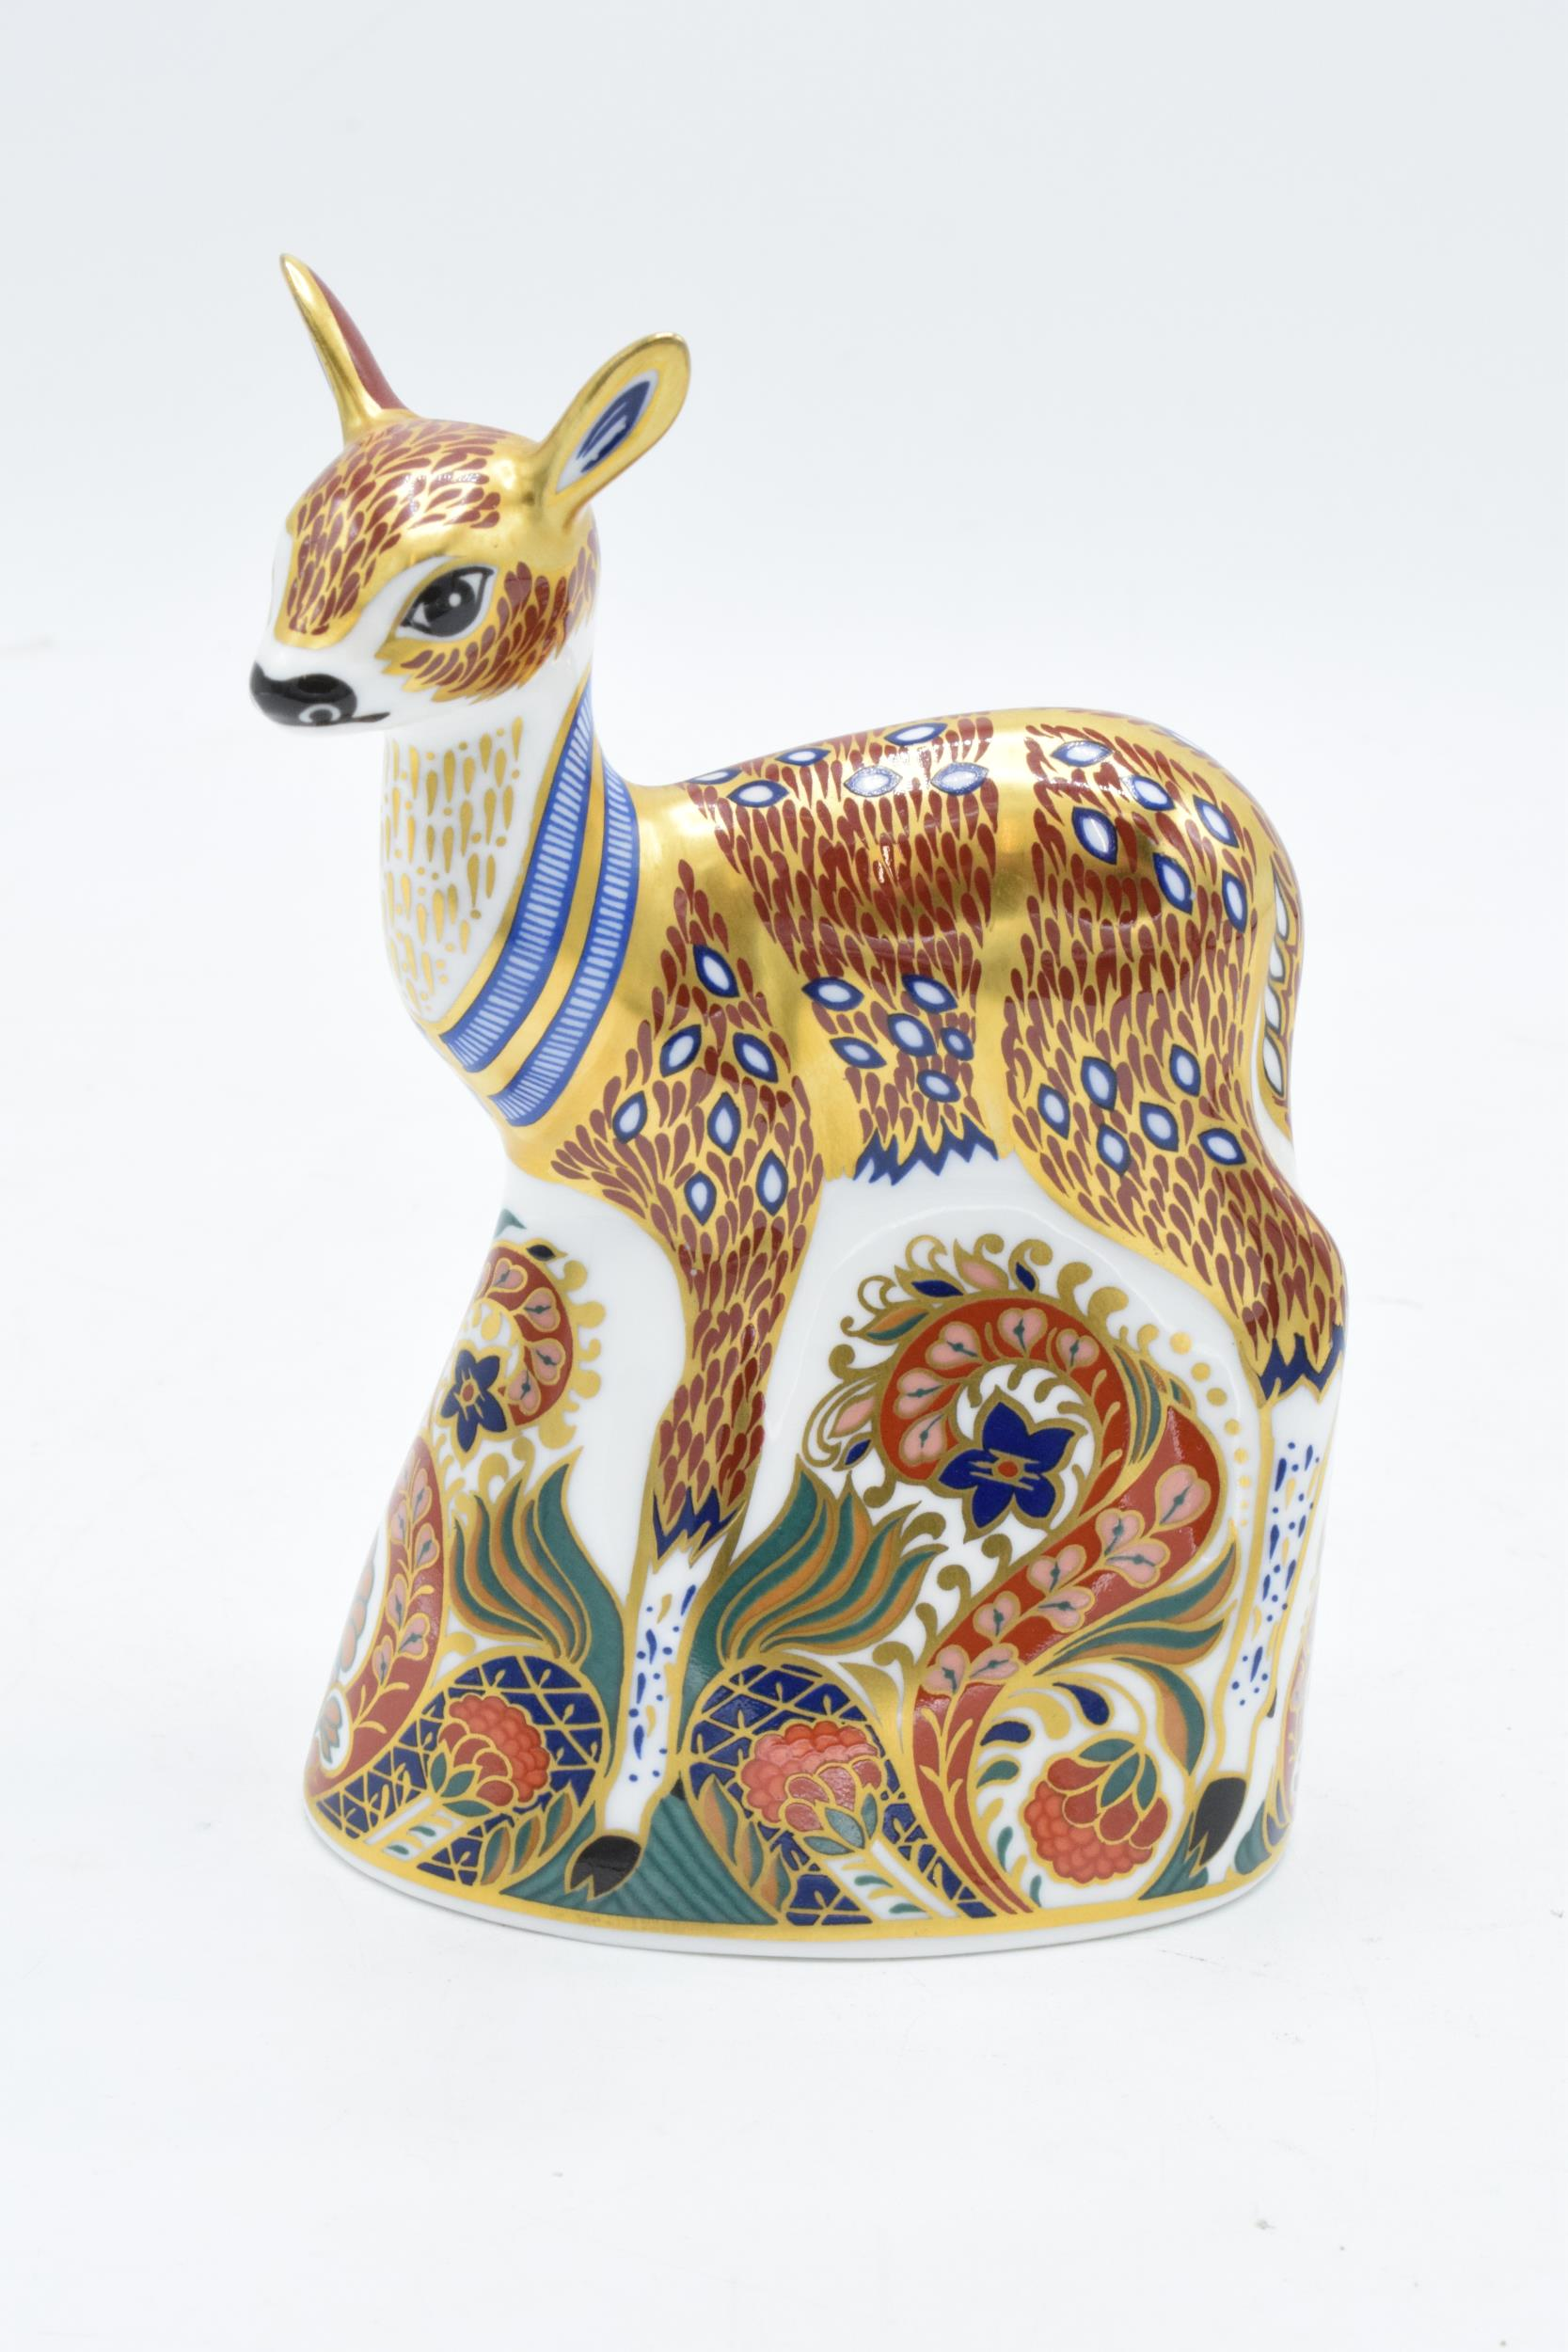 Boxed Royal Crown Derby paperweight in the form of a Fawn. First quality with stopper. In good